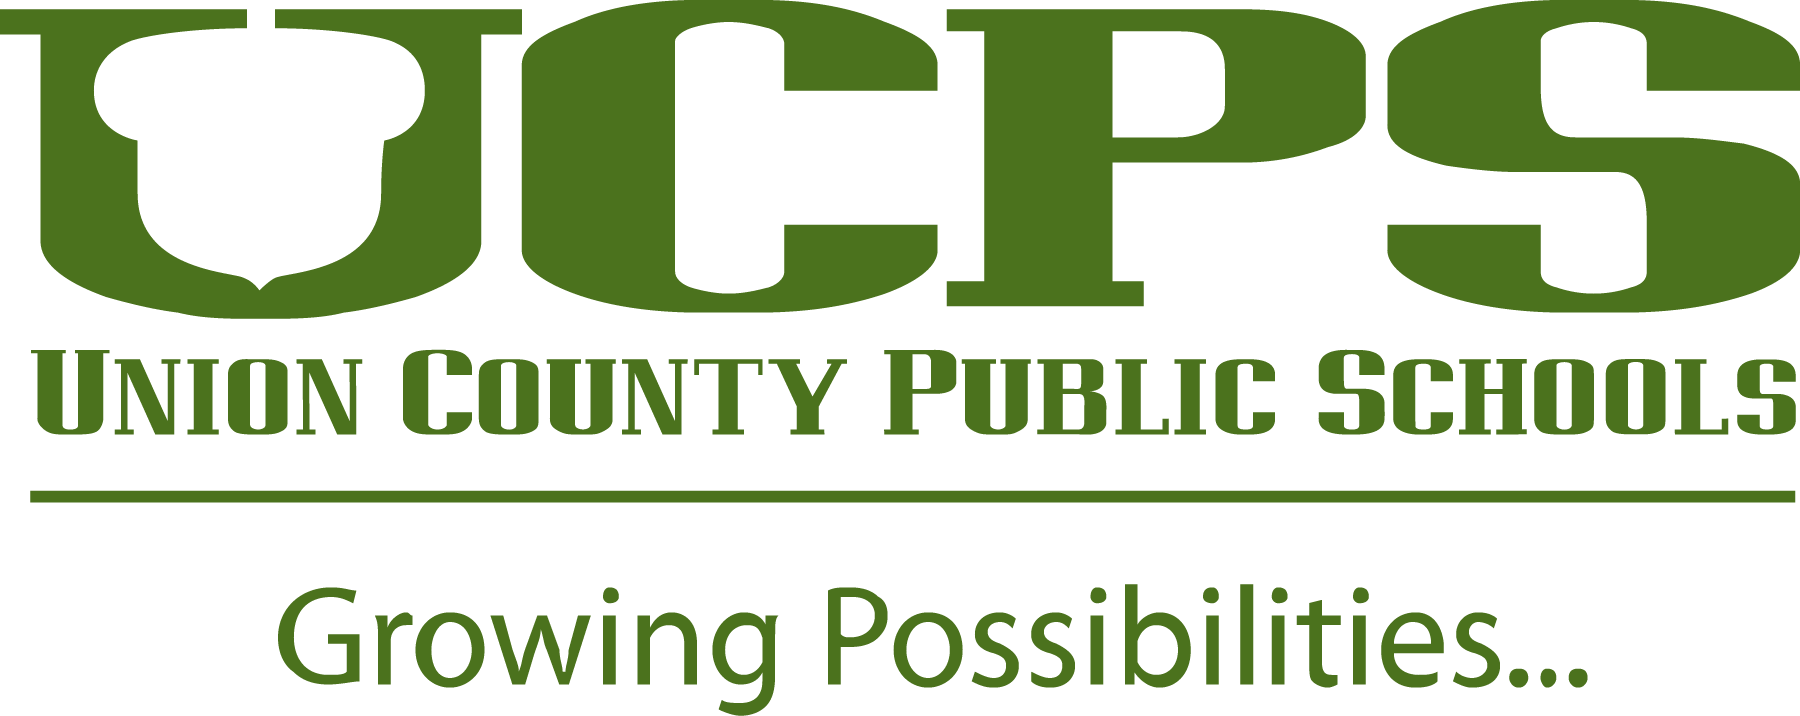 UCPS Student Realignment: Grandfathering and other updates